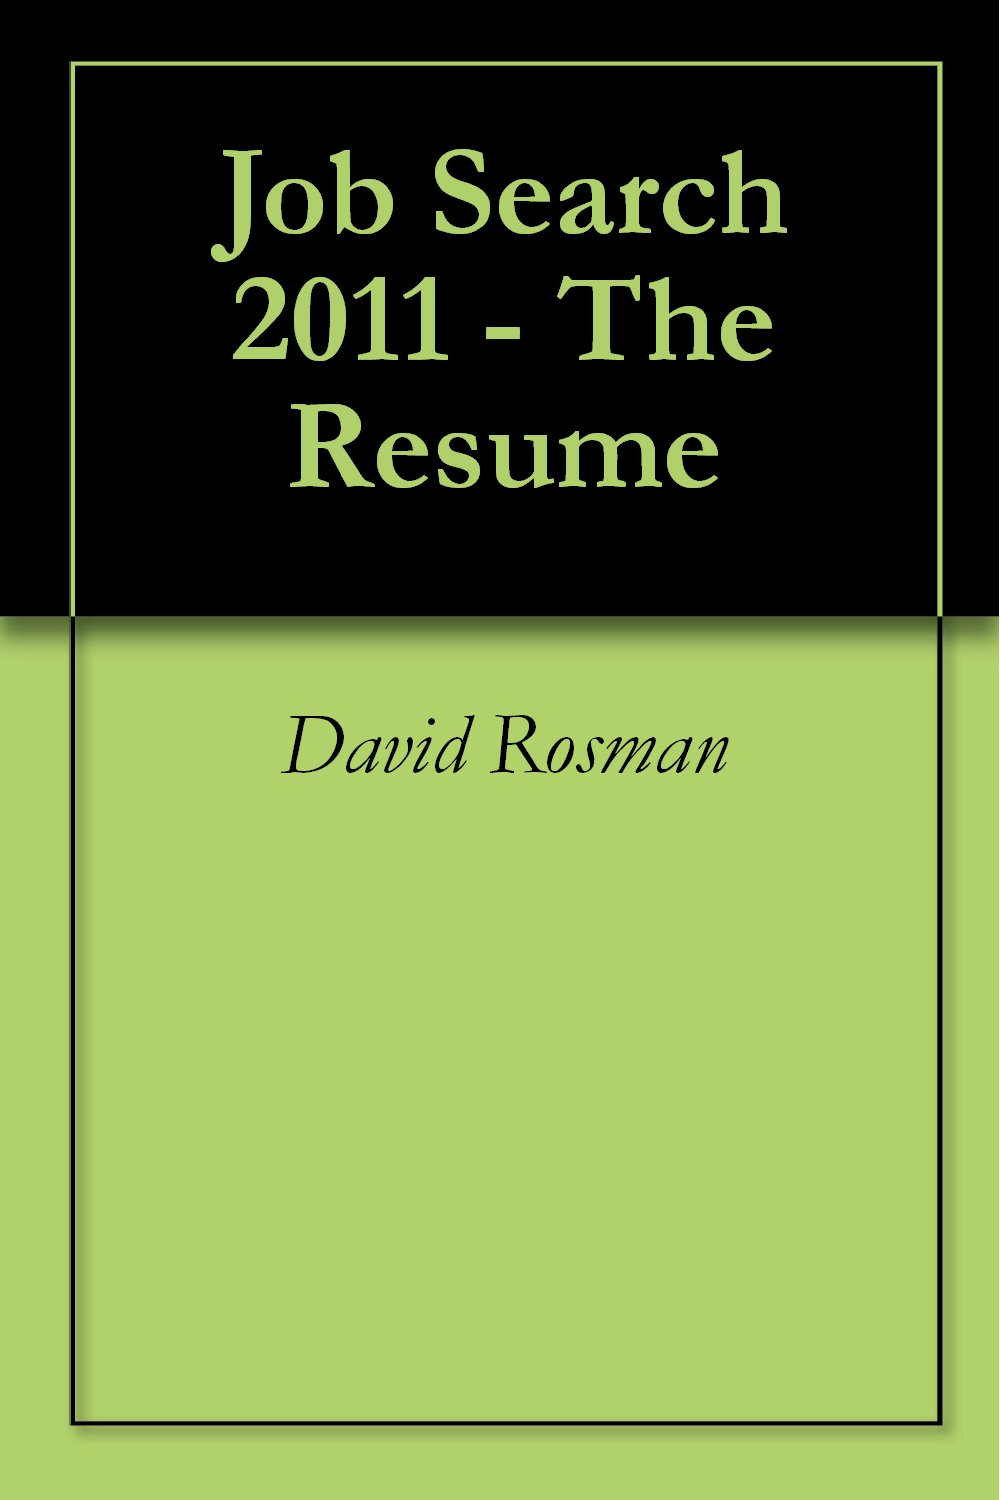 Job Search 2011 - The Resume